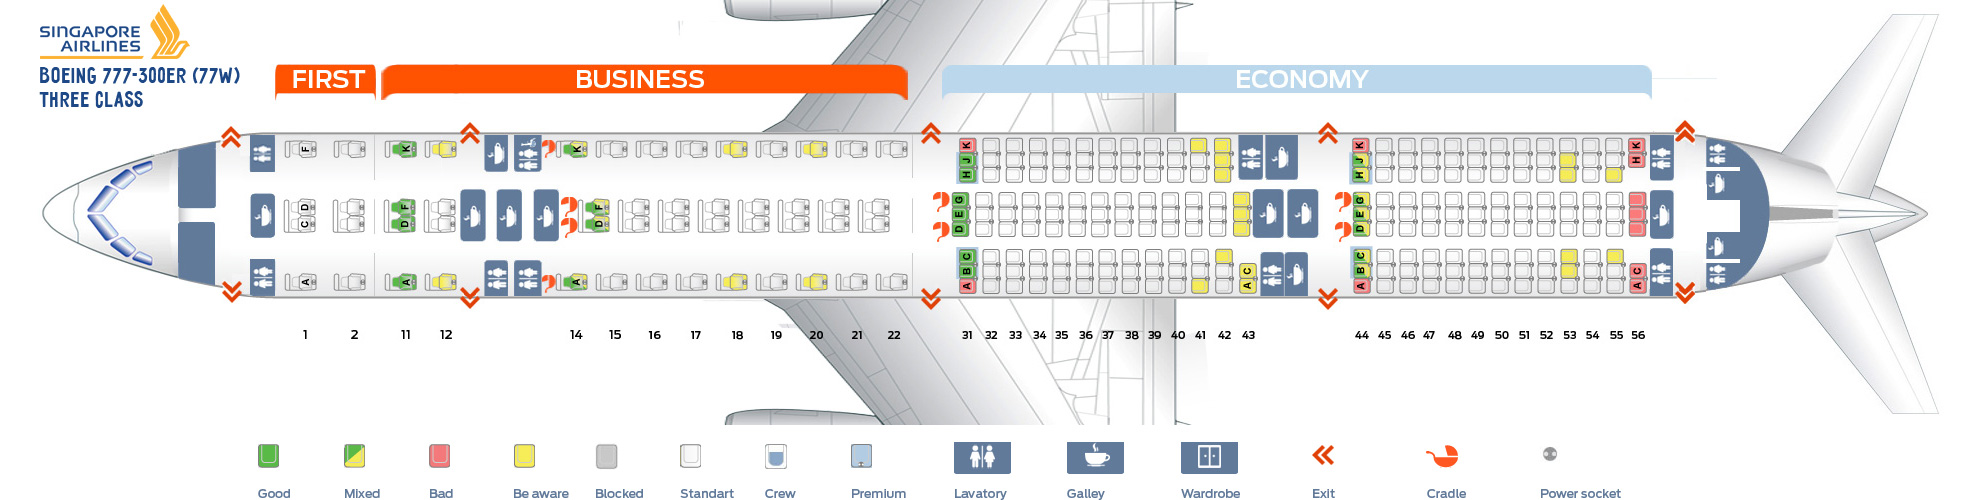 Seat Map Boeing 777 300er Singapore Airlines   Brokeasshome.com